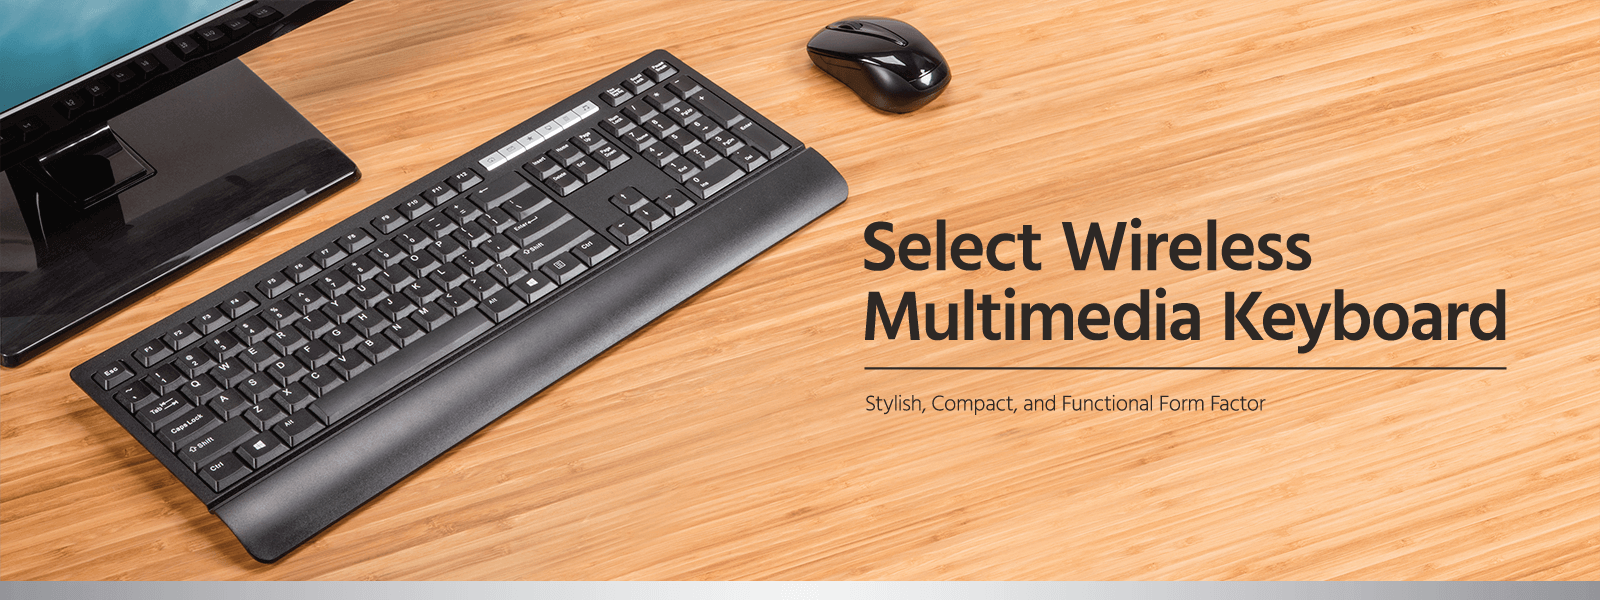 Select Wireless Multimedia Keyboard